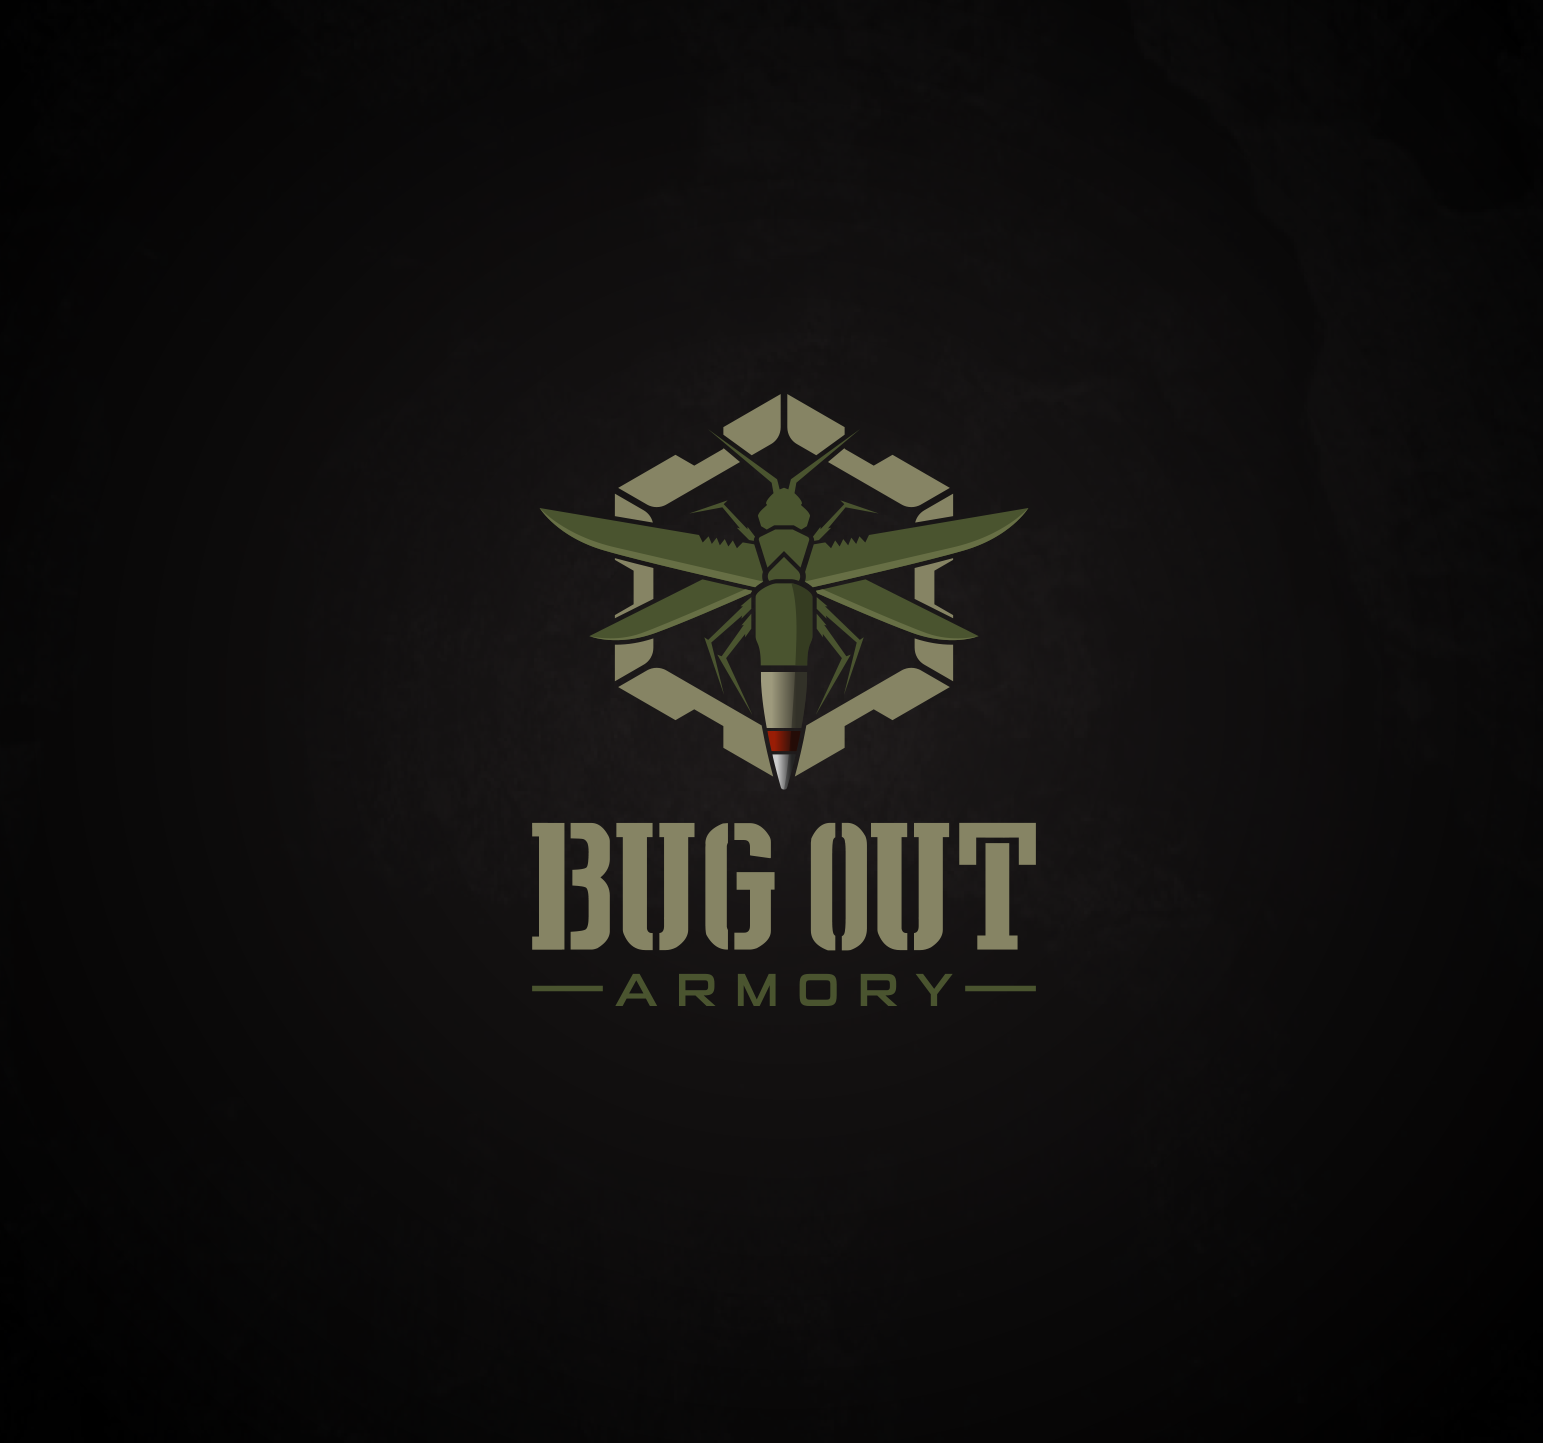 Bug out logo